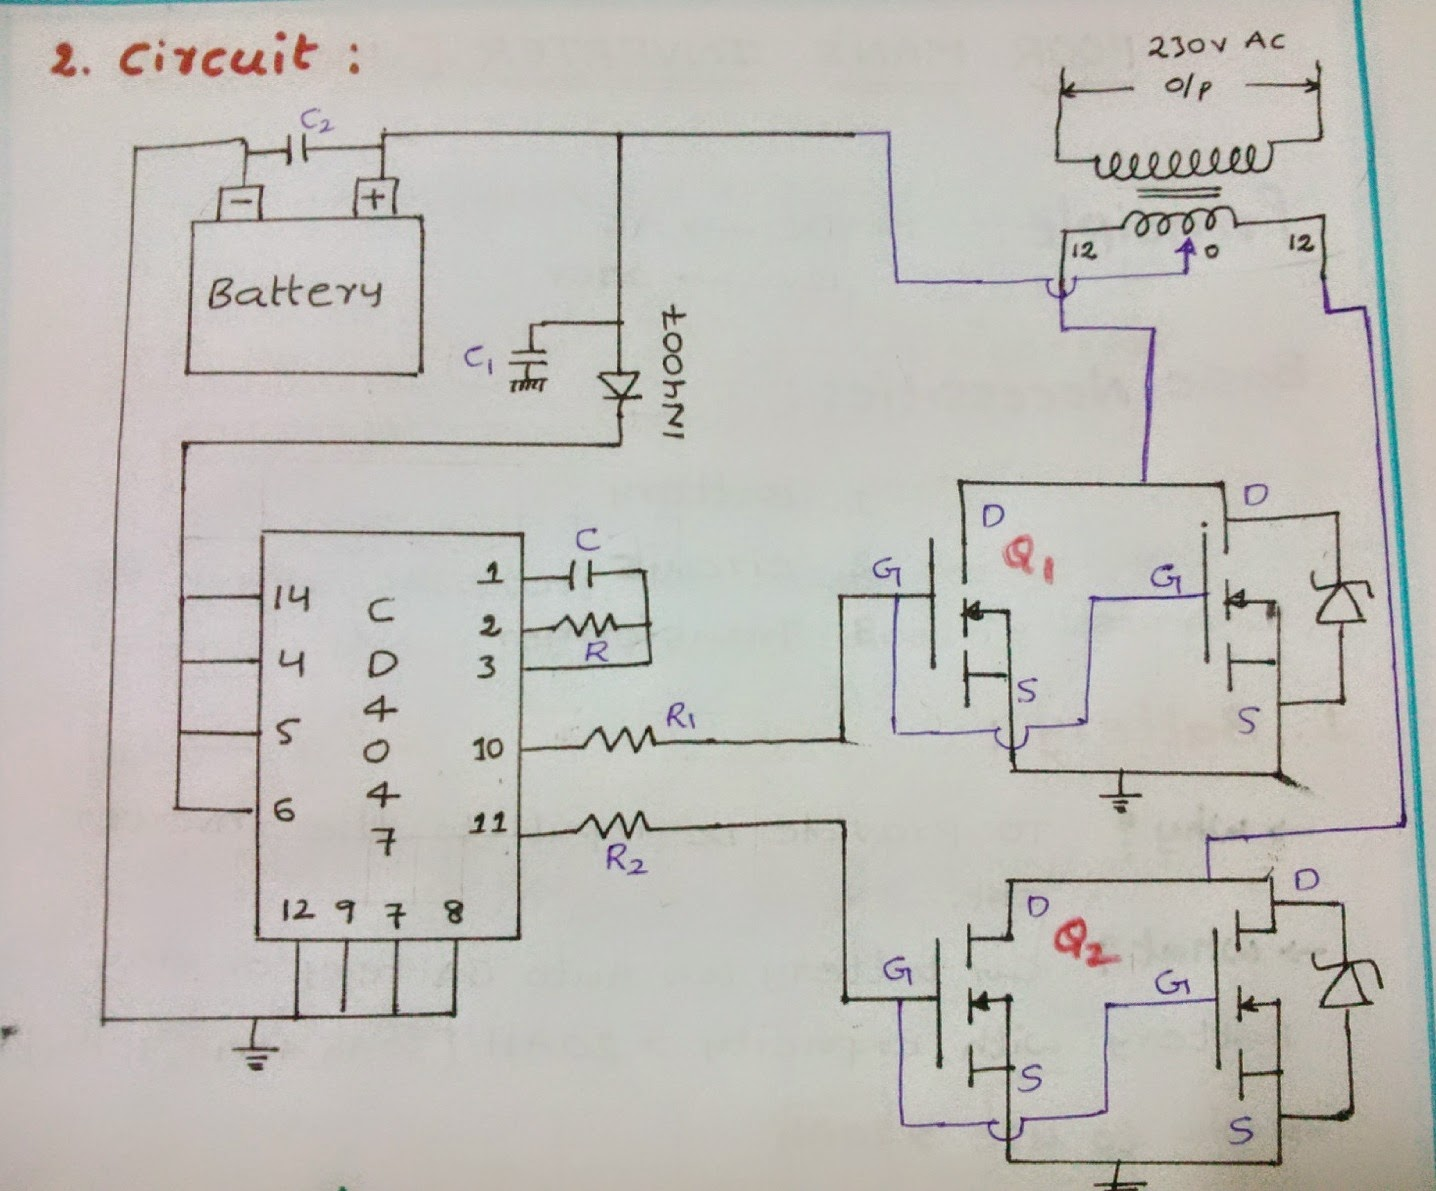 Irf3205 Circuit Diagram Voltage Regulator Just Another Wiring Dc Motor Speed Controller With Lm317 Simple Poor Man S Inverter 100 150 Watts Rh Poormansinverter Blogspot Com Power Transistor 7809